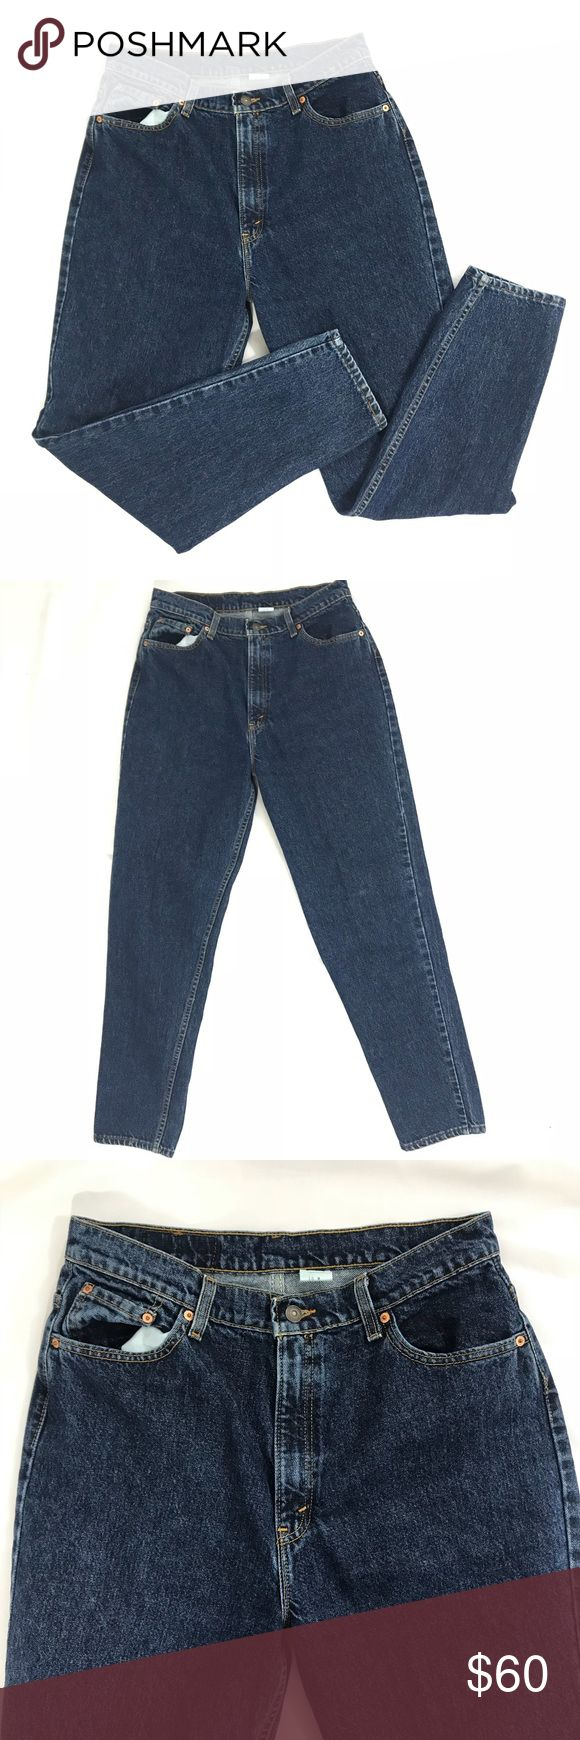 VTG 80's Levis 550 Jeans 16m High Waist Indigo Mom Vintage 1980'S Levi's 550 Relaxed Indigo Wash  Tapered legs and High Waist  Size: 16 M Measures: Waist: 16 1/2 inches laying flat across Hips: 21 1/2 inches laying flat across Rise: 13 inches  Inseam 30 inches Material: 100% COTTON Levi's Jeans